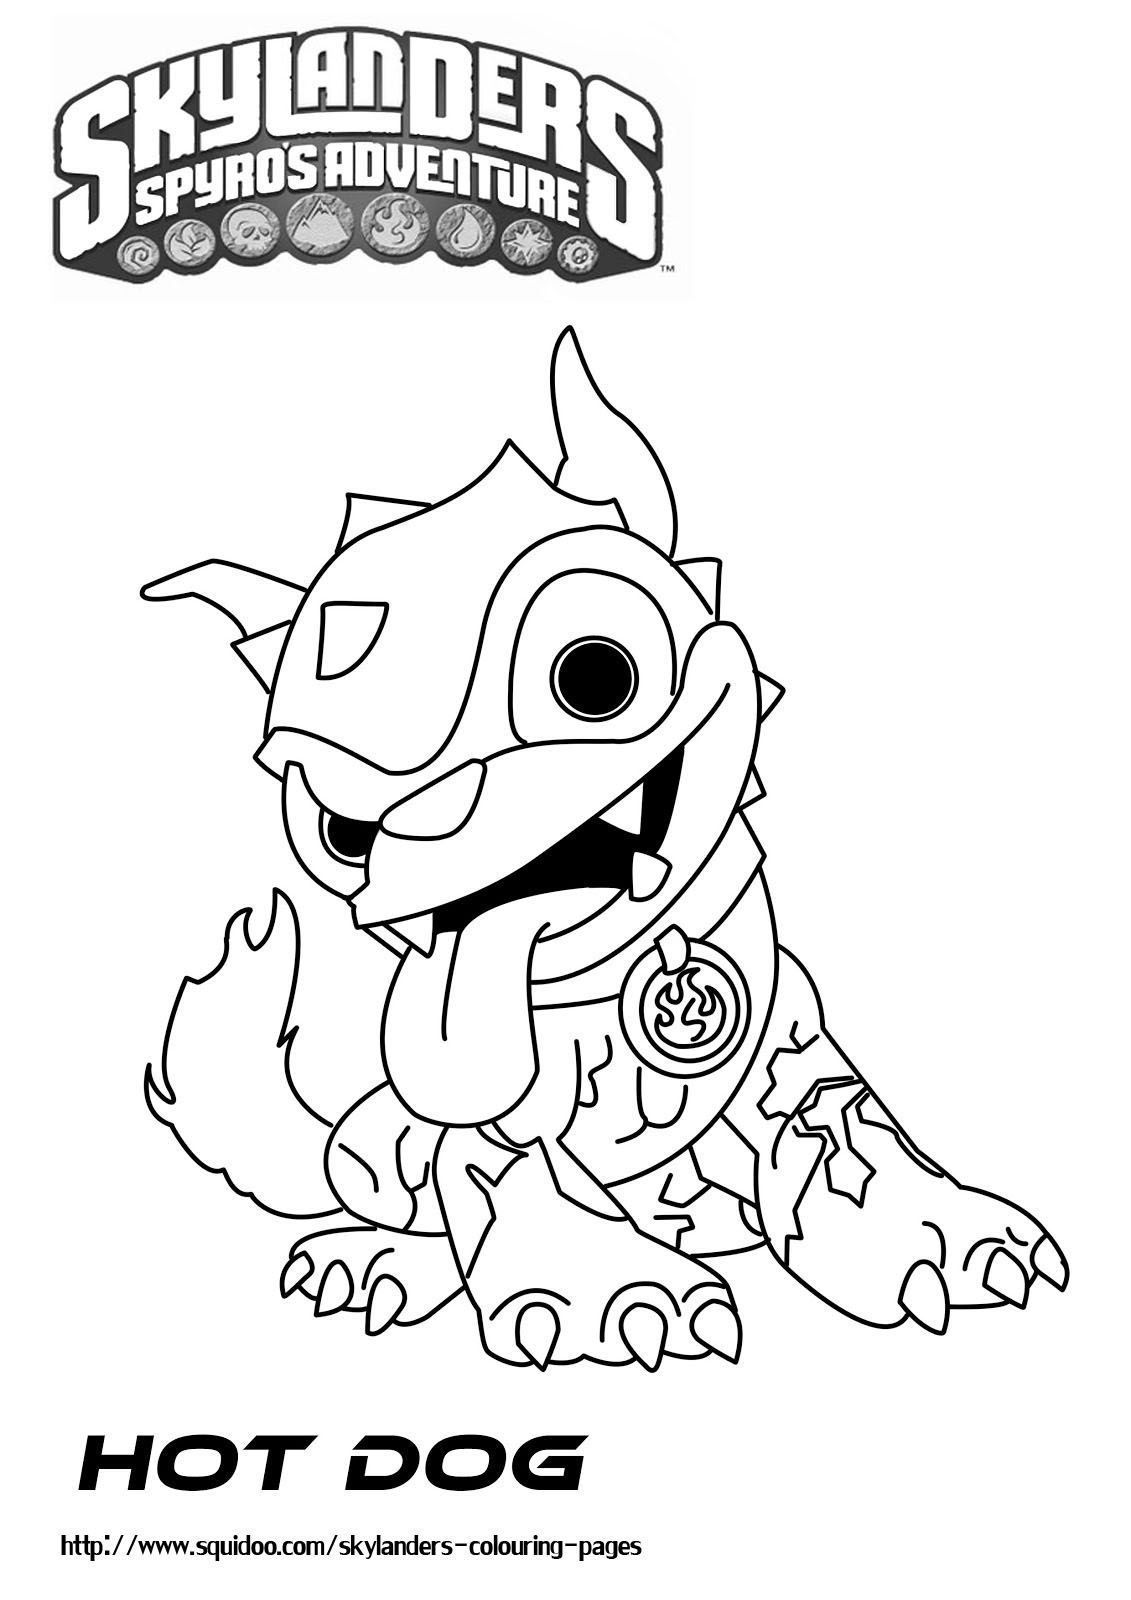 skylanders coloring pages dejau printable - photo#30